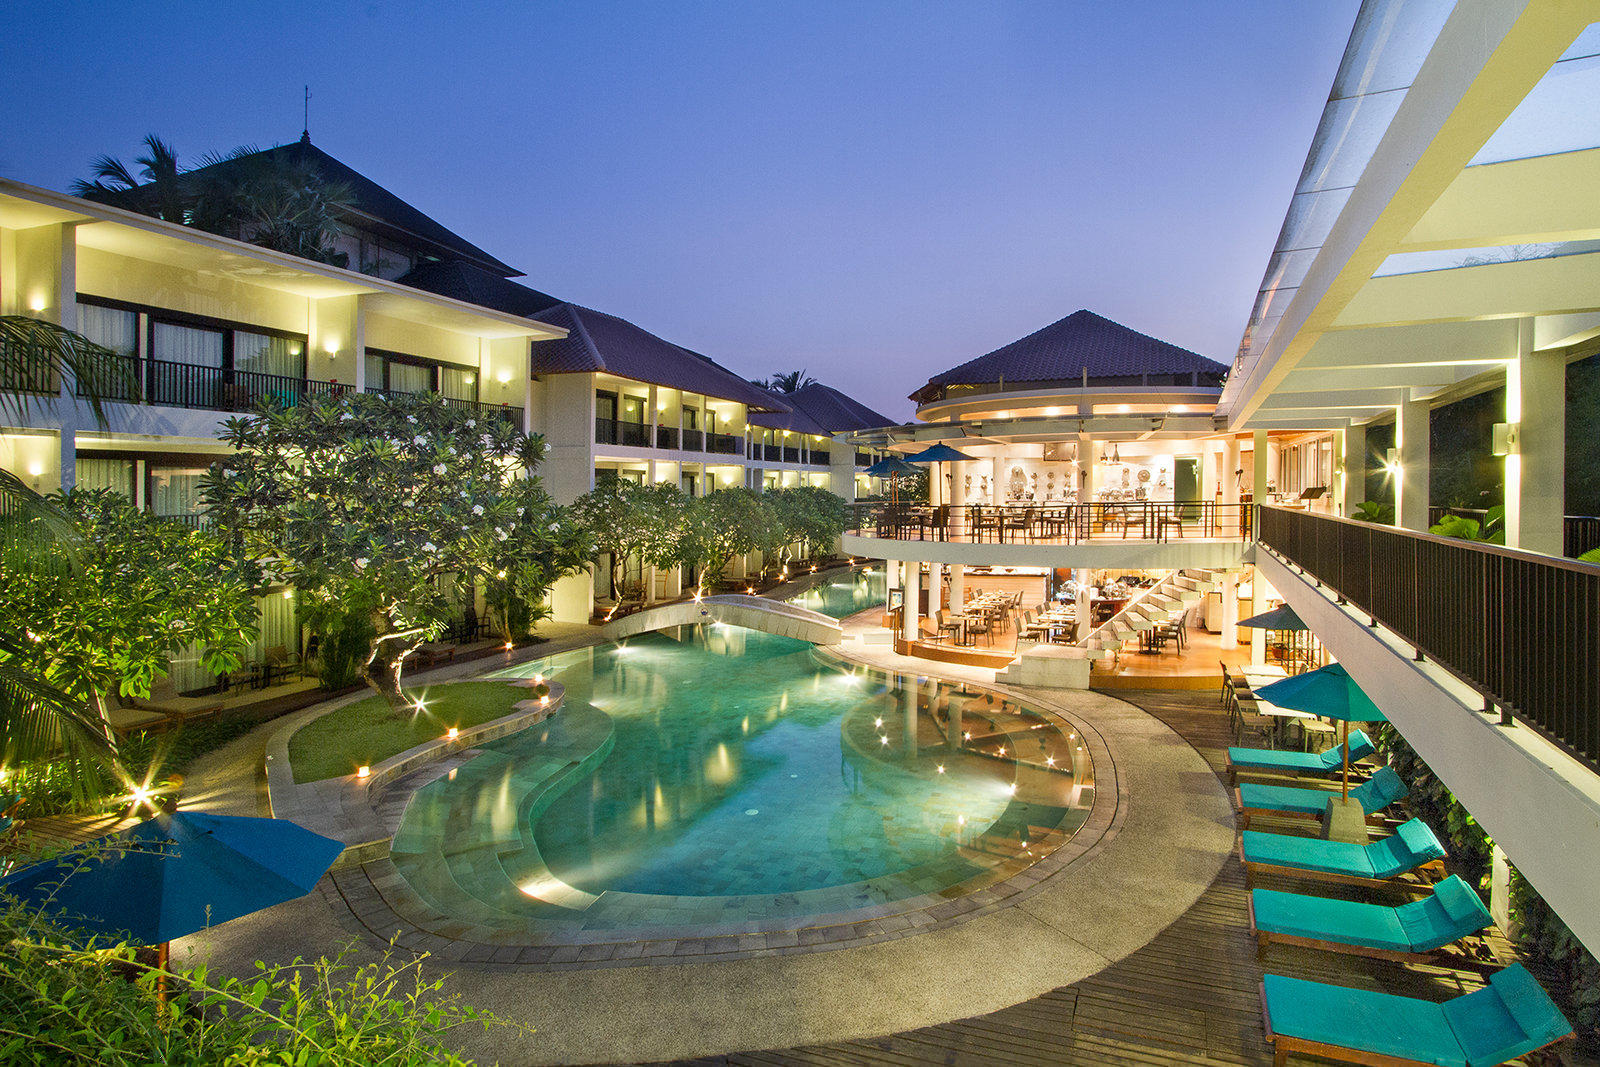 away bali legian camakila legian beach resort where to stay bali rh awaybalilegiancamakila com